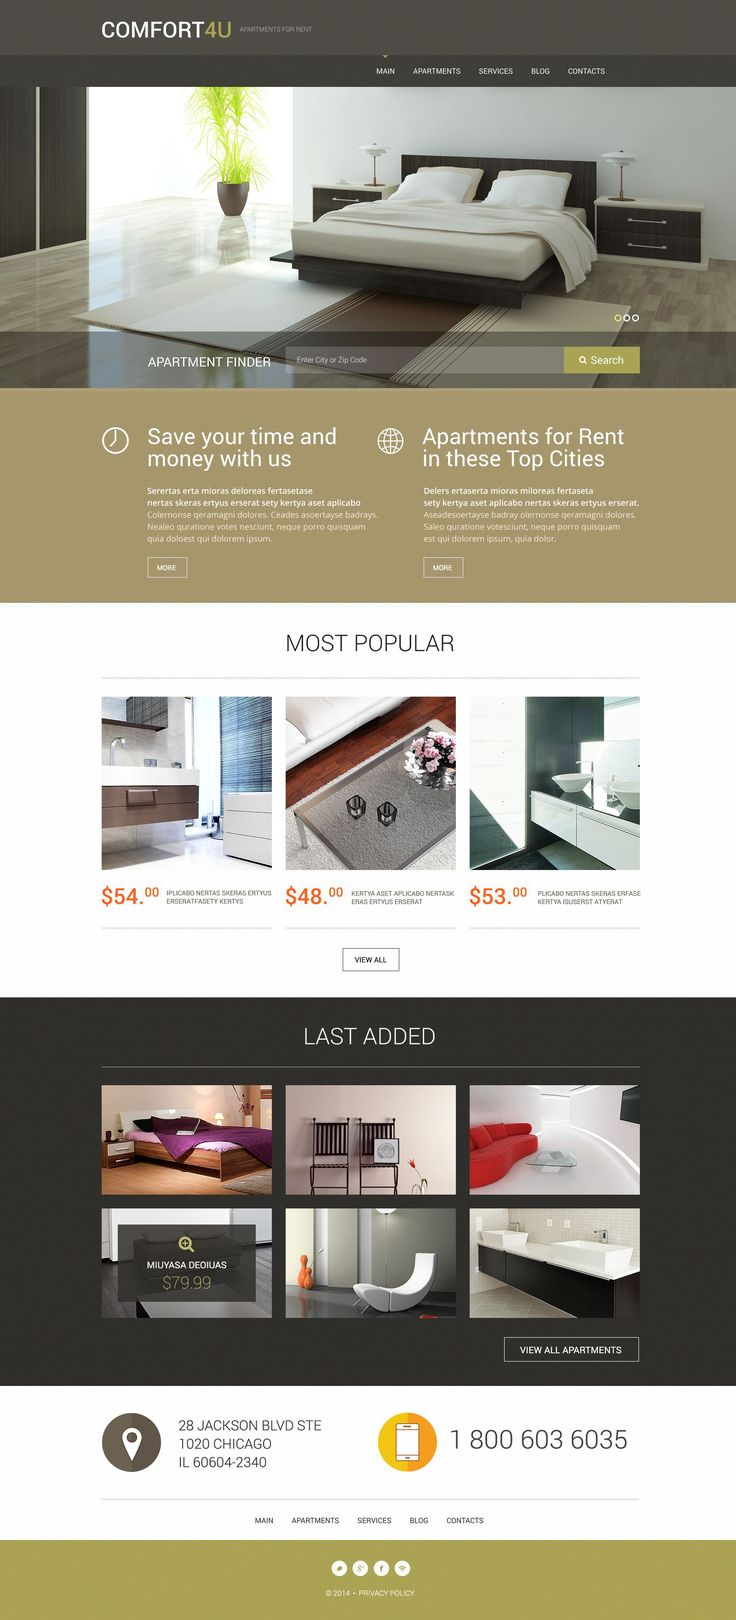 27 best Real Estate Web Template images on Pinterest | Website ...